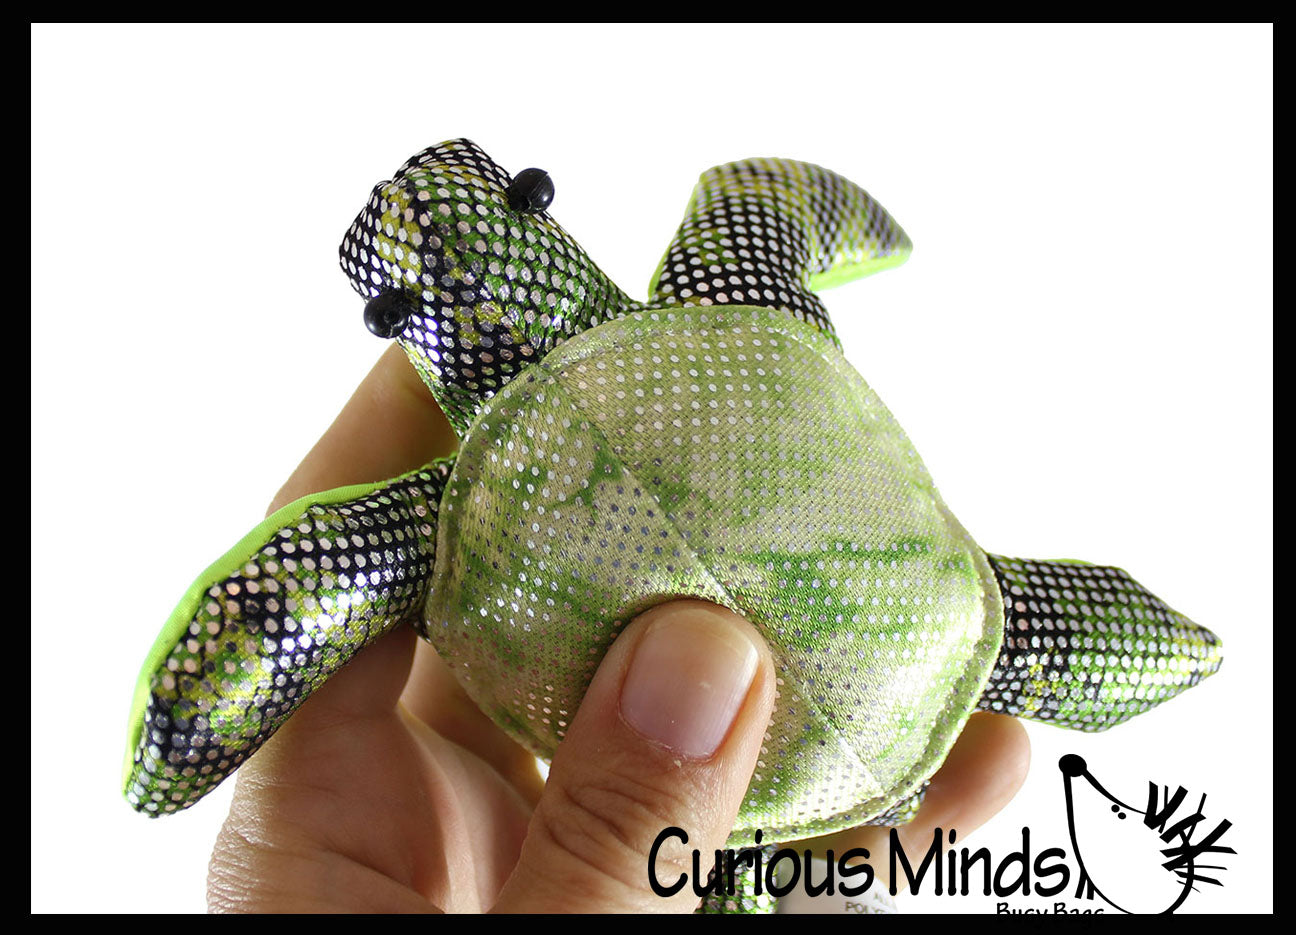 Sand Filled Stuffed Animals, Turtle Sand Filled Animal Toy Heavy Weighted Sandbag Animal Plush Be Curious Minds Busy Bags